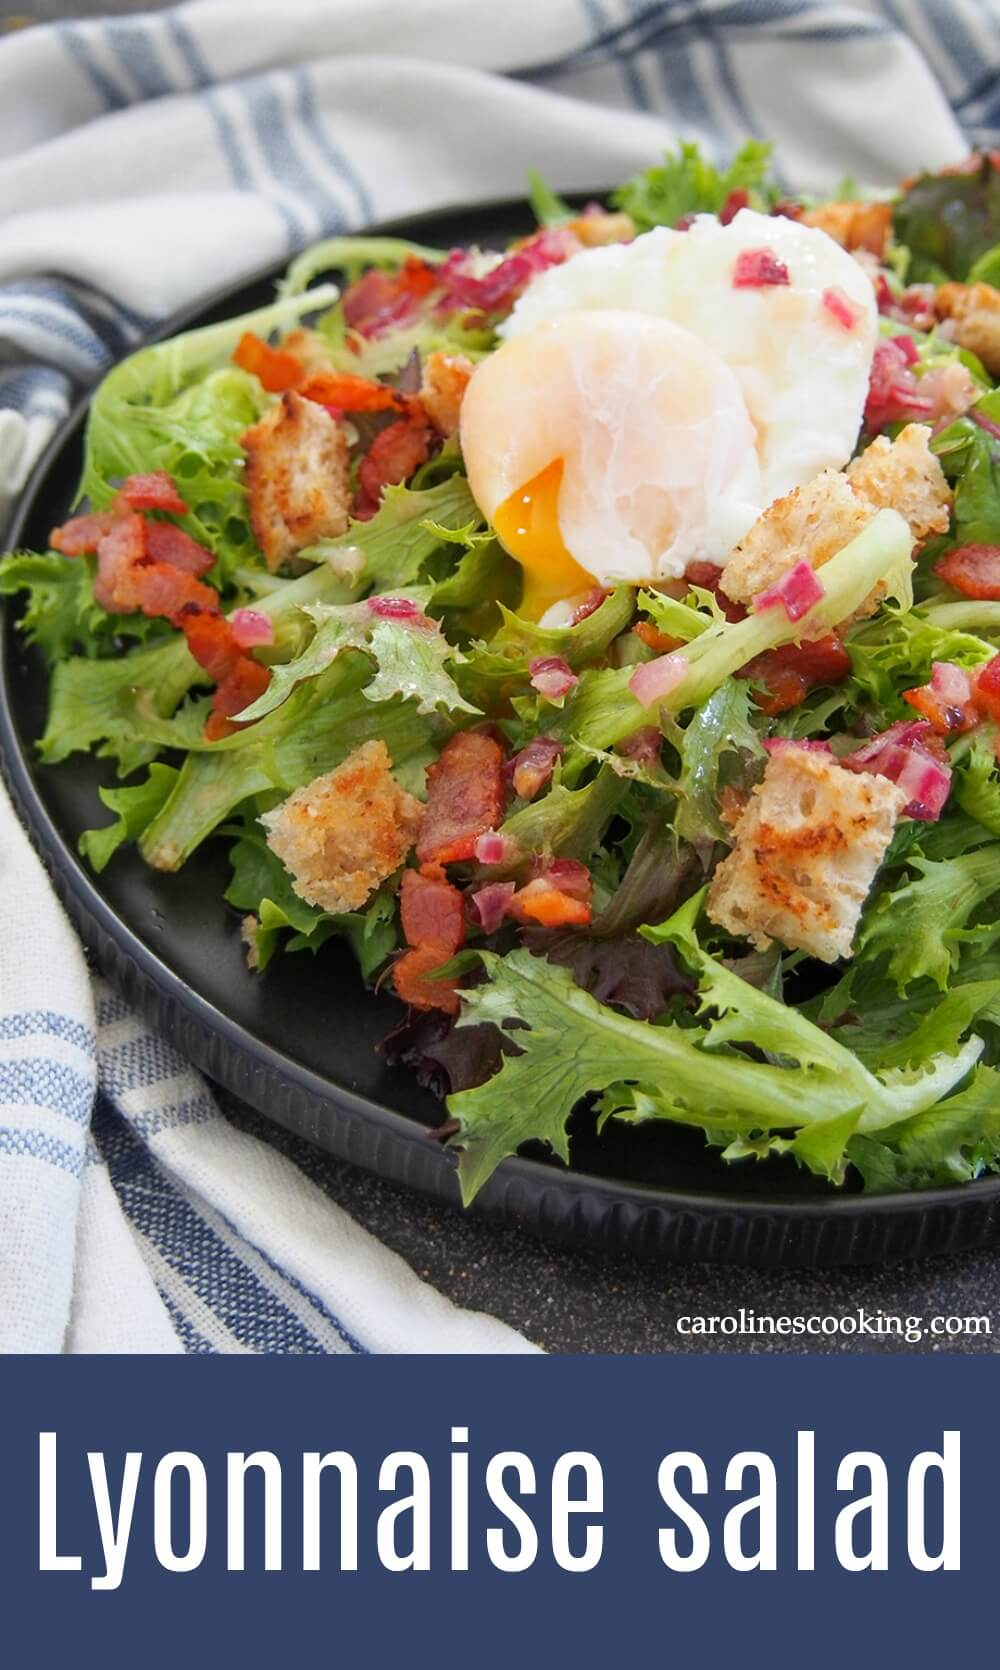 A classic Lyonnaise salad (salade Lyonnaise) may be little more than greens, bacon and egg but when combined, they become special. The punchy mustard in particular brings it all together. It's popular in bistros across France for good reason, and so easy to make at home as an appetizer or light lunch. #salad #frenchrecipe #baconsalad